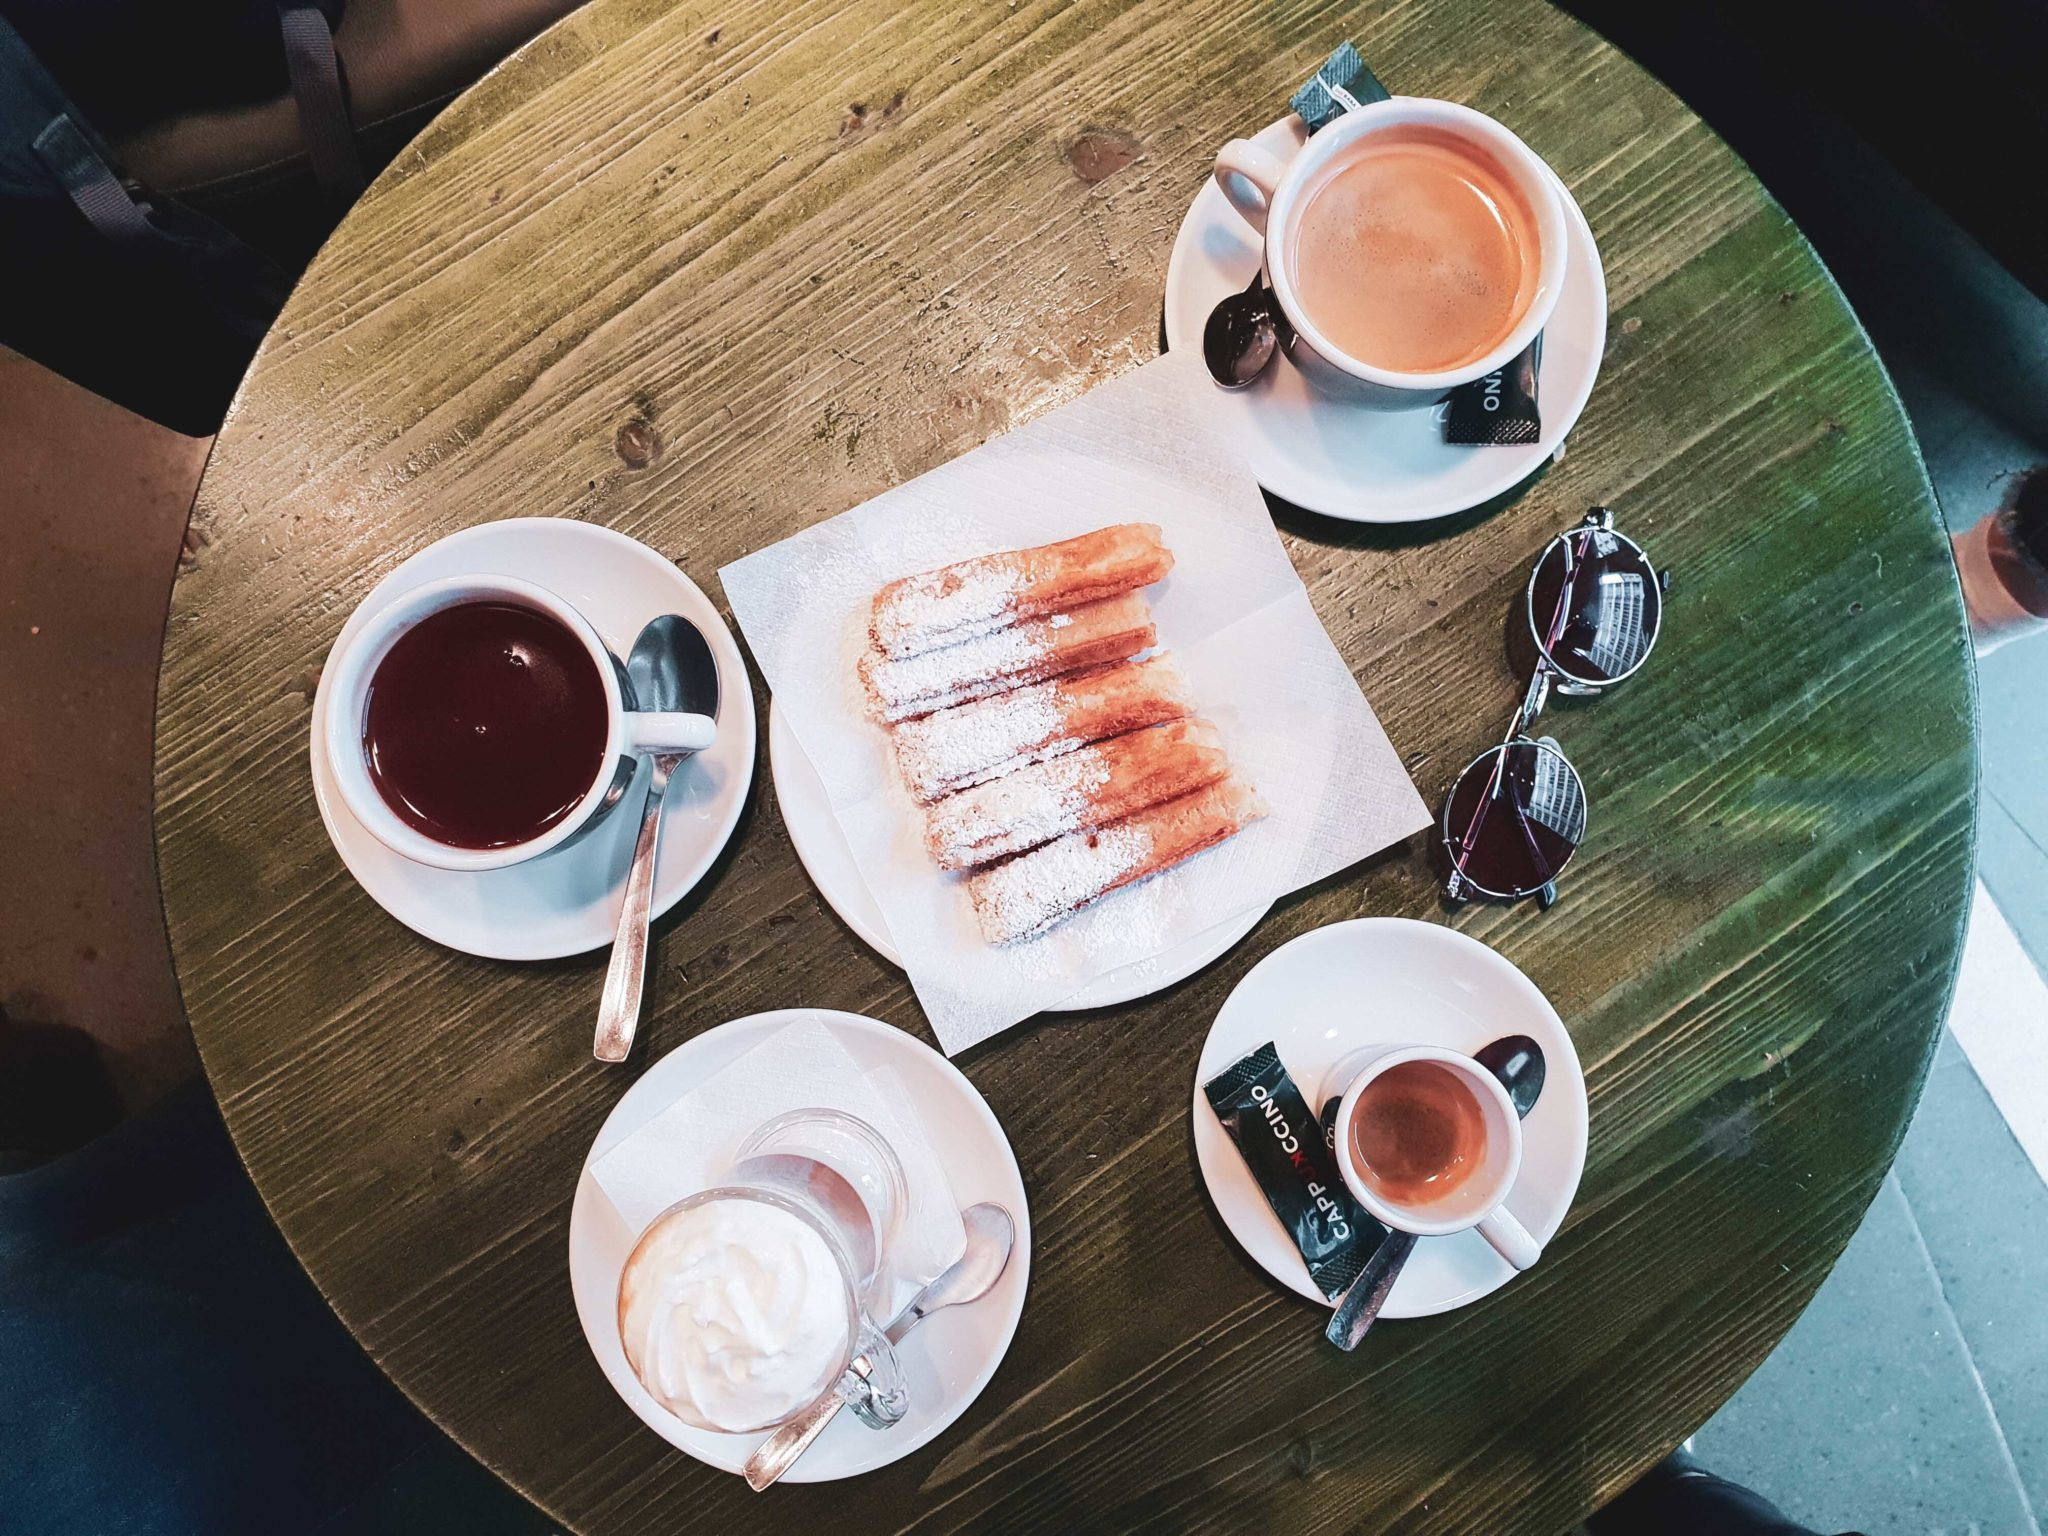 Barcelona travel guide by Michaella and Lina from Bulgarian lifestyle blog Quite a Looker / Churros